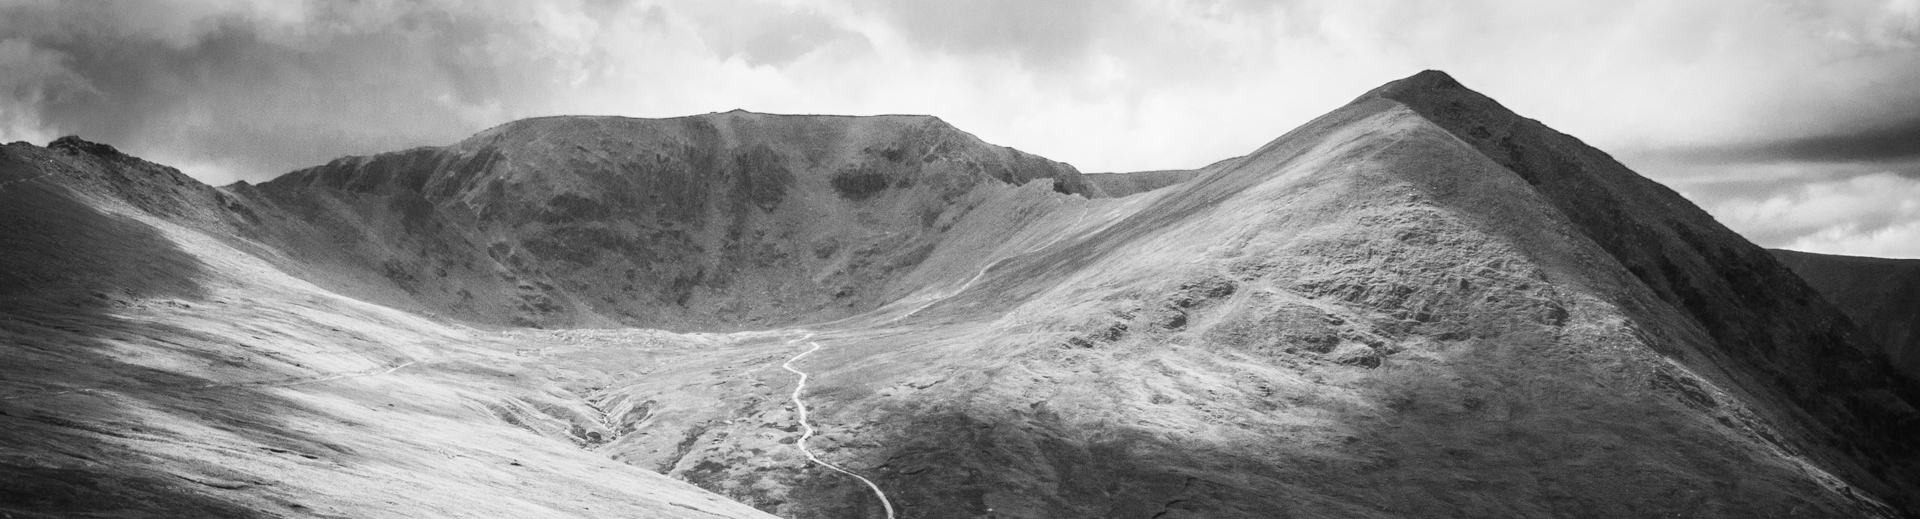 Catstye Cam or Catstycam, seen from Hole in the Wall and with Helvellyn in the background